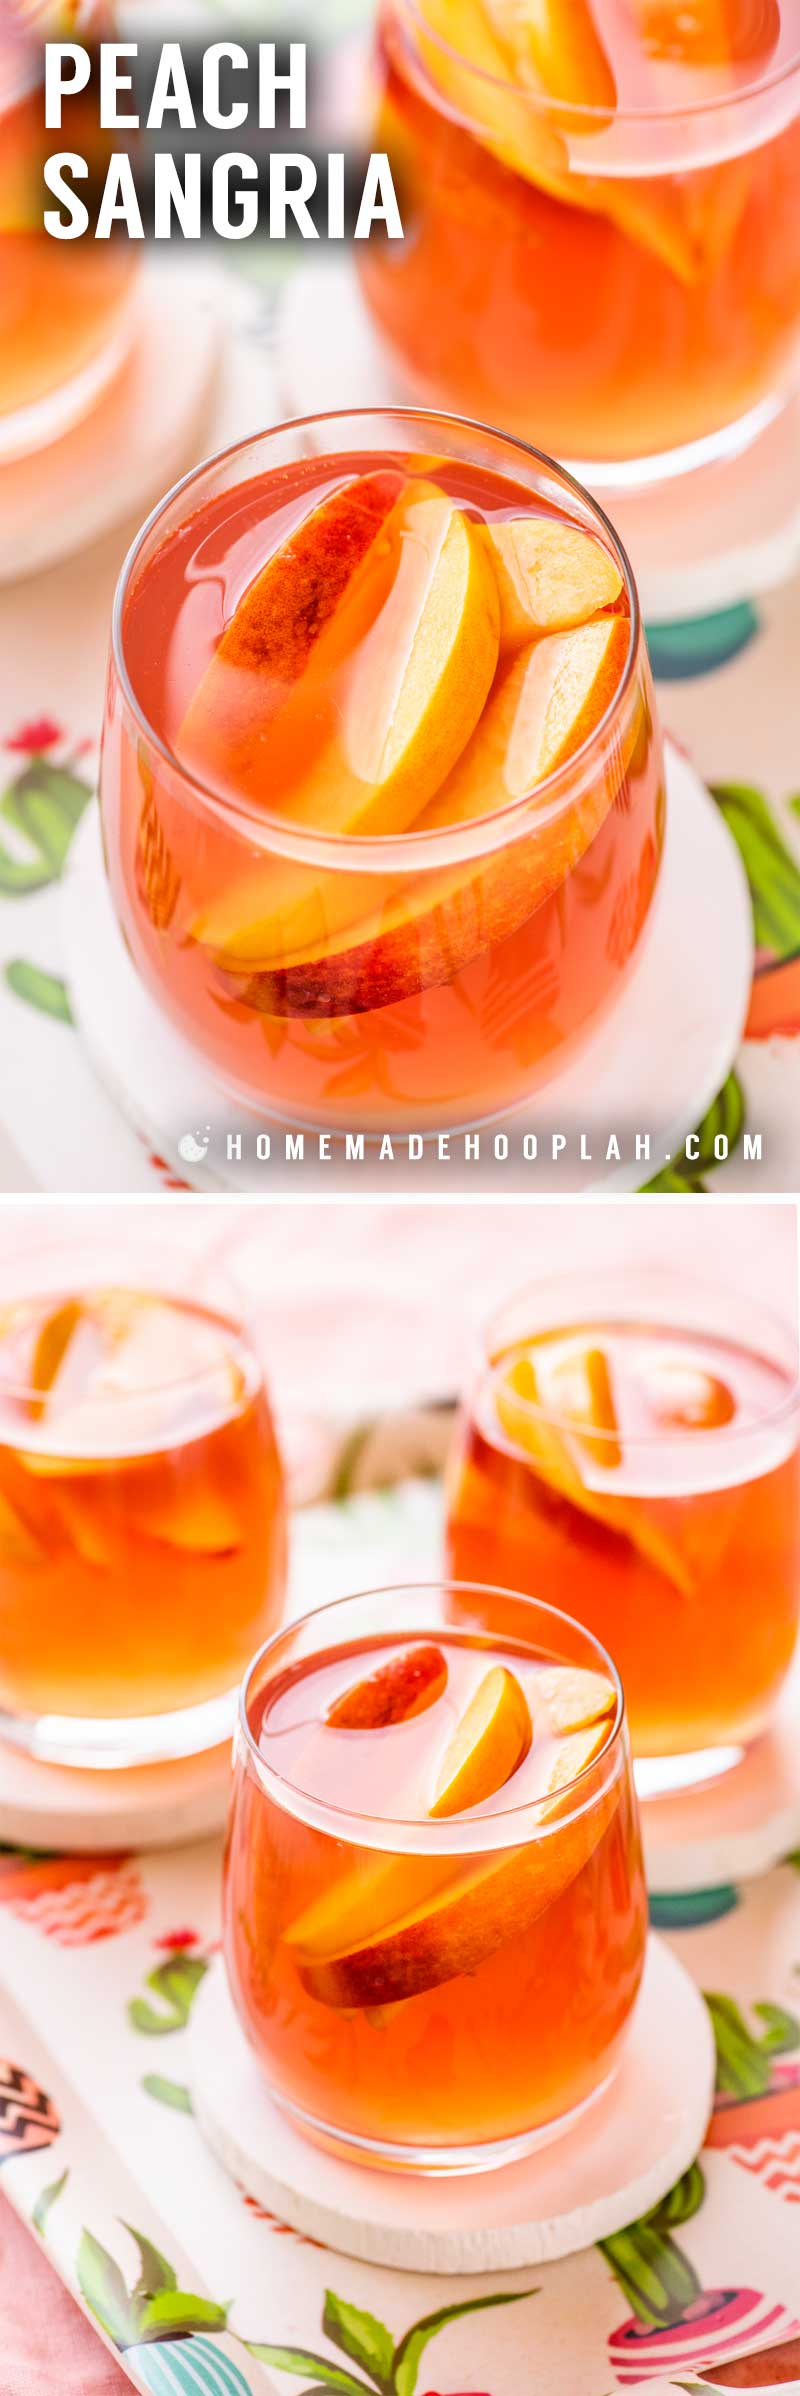 Peach Sangria! Celebrate the taste of late summer with this classic and crisp peach sangria. Perfect for entertaining, this recipe only uses five easy-to-find ingredients and can be made with fresh or frozen peaches. | HomemadeHooplah.com